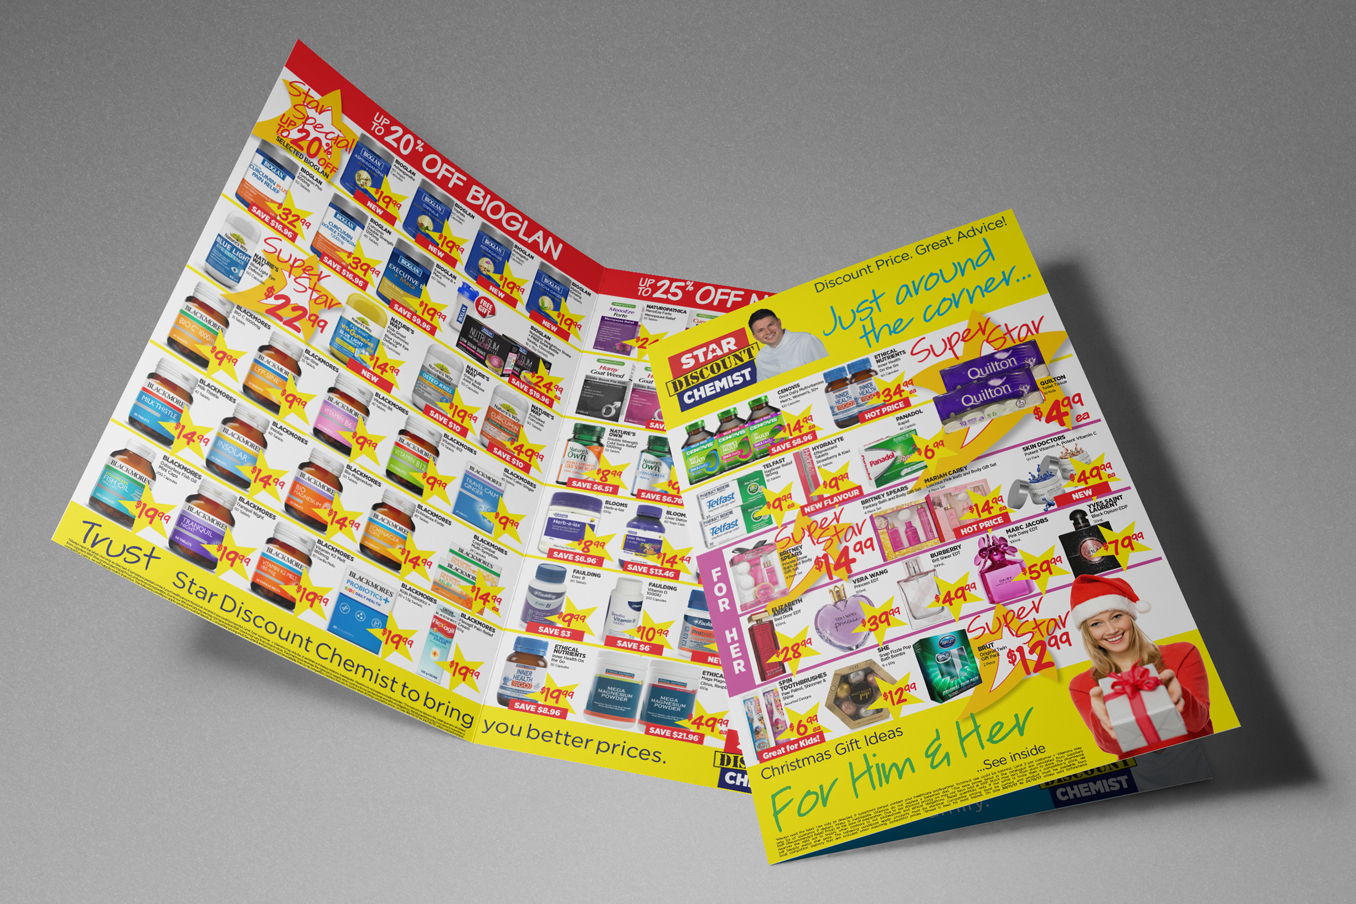 Star Discount Chemist catalogue